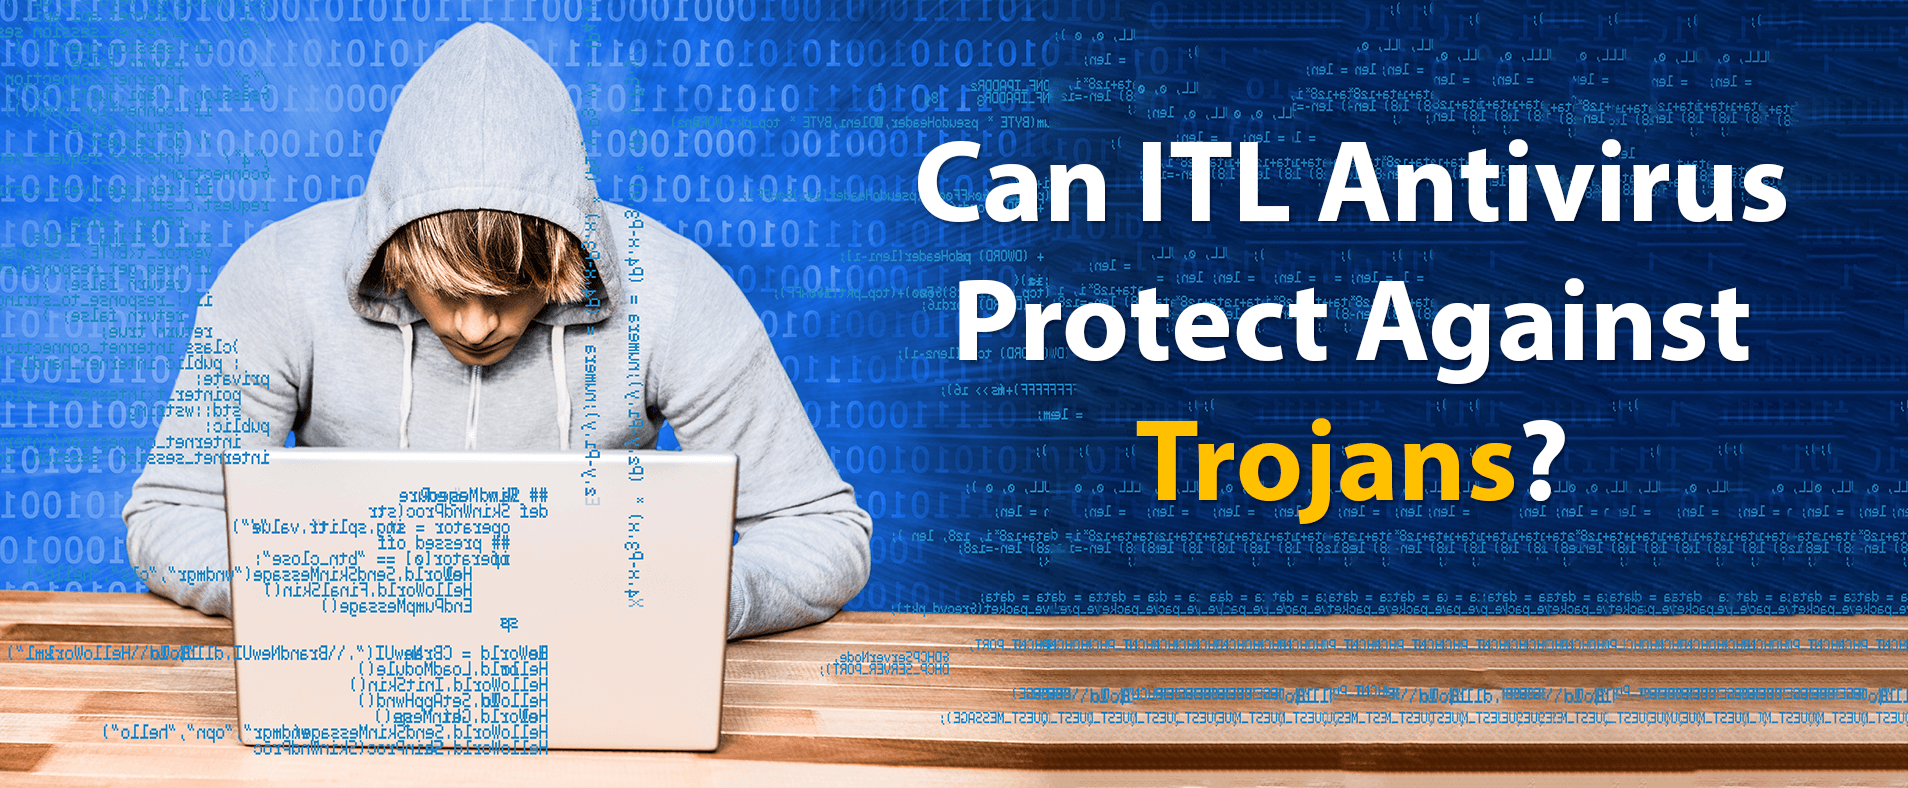 can antivirus protect against trojans